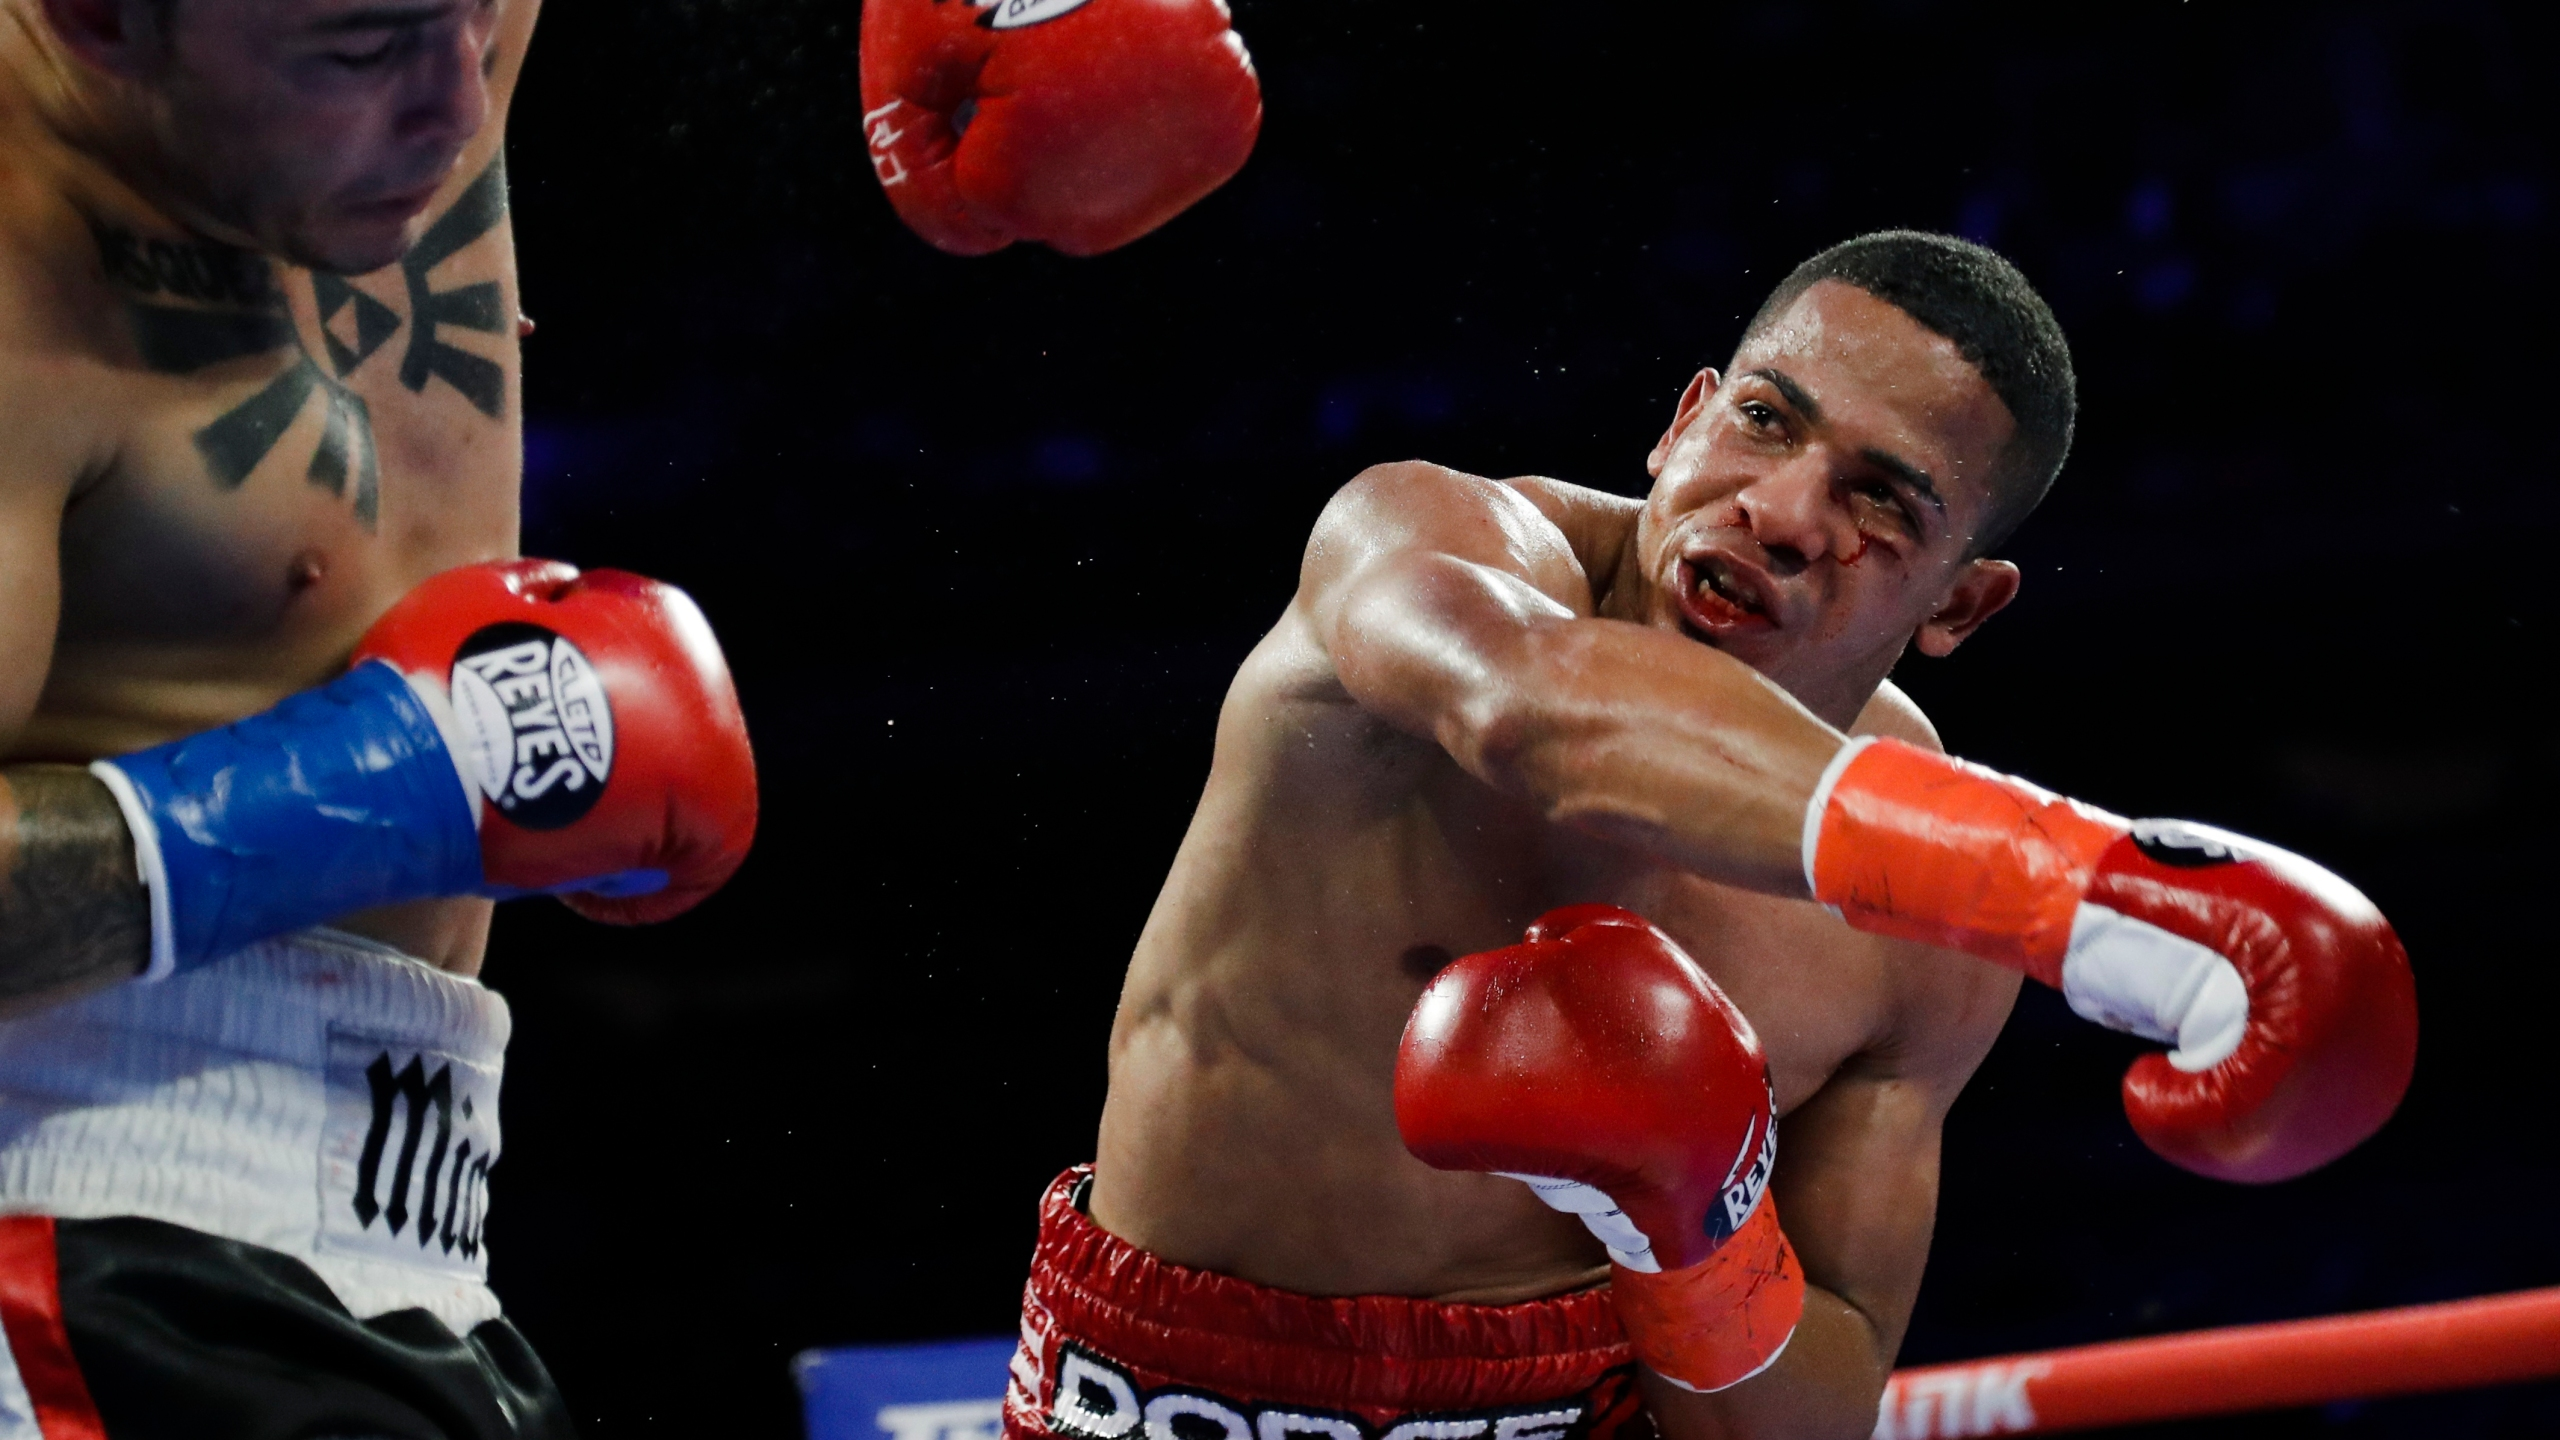 In this April 20, 2019 file photo, Puerto Rico's Felix Verdejo, right, punches Costa Rica's Bryan Vazquez during the fifth round of a lightweight boxing match in New York. Verdejo has turned himself in to federal agents on Saturday, May 1, 2021, just hours after authorities identified the body of his 27-year-old lover Keishla Rodríguez in a lagoon in the U.S. territory, a couple of days after she was reported missing. (AP Photo/Frank Franklin II, File)